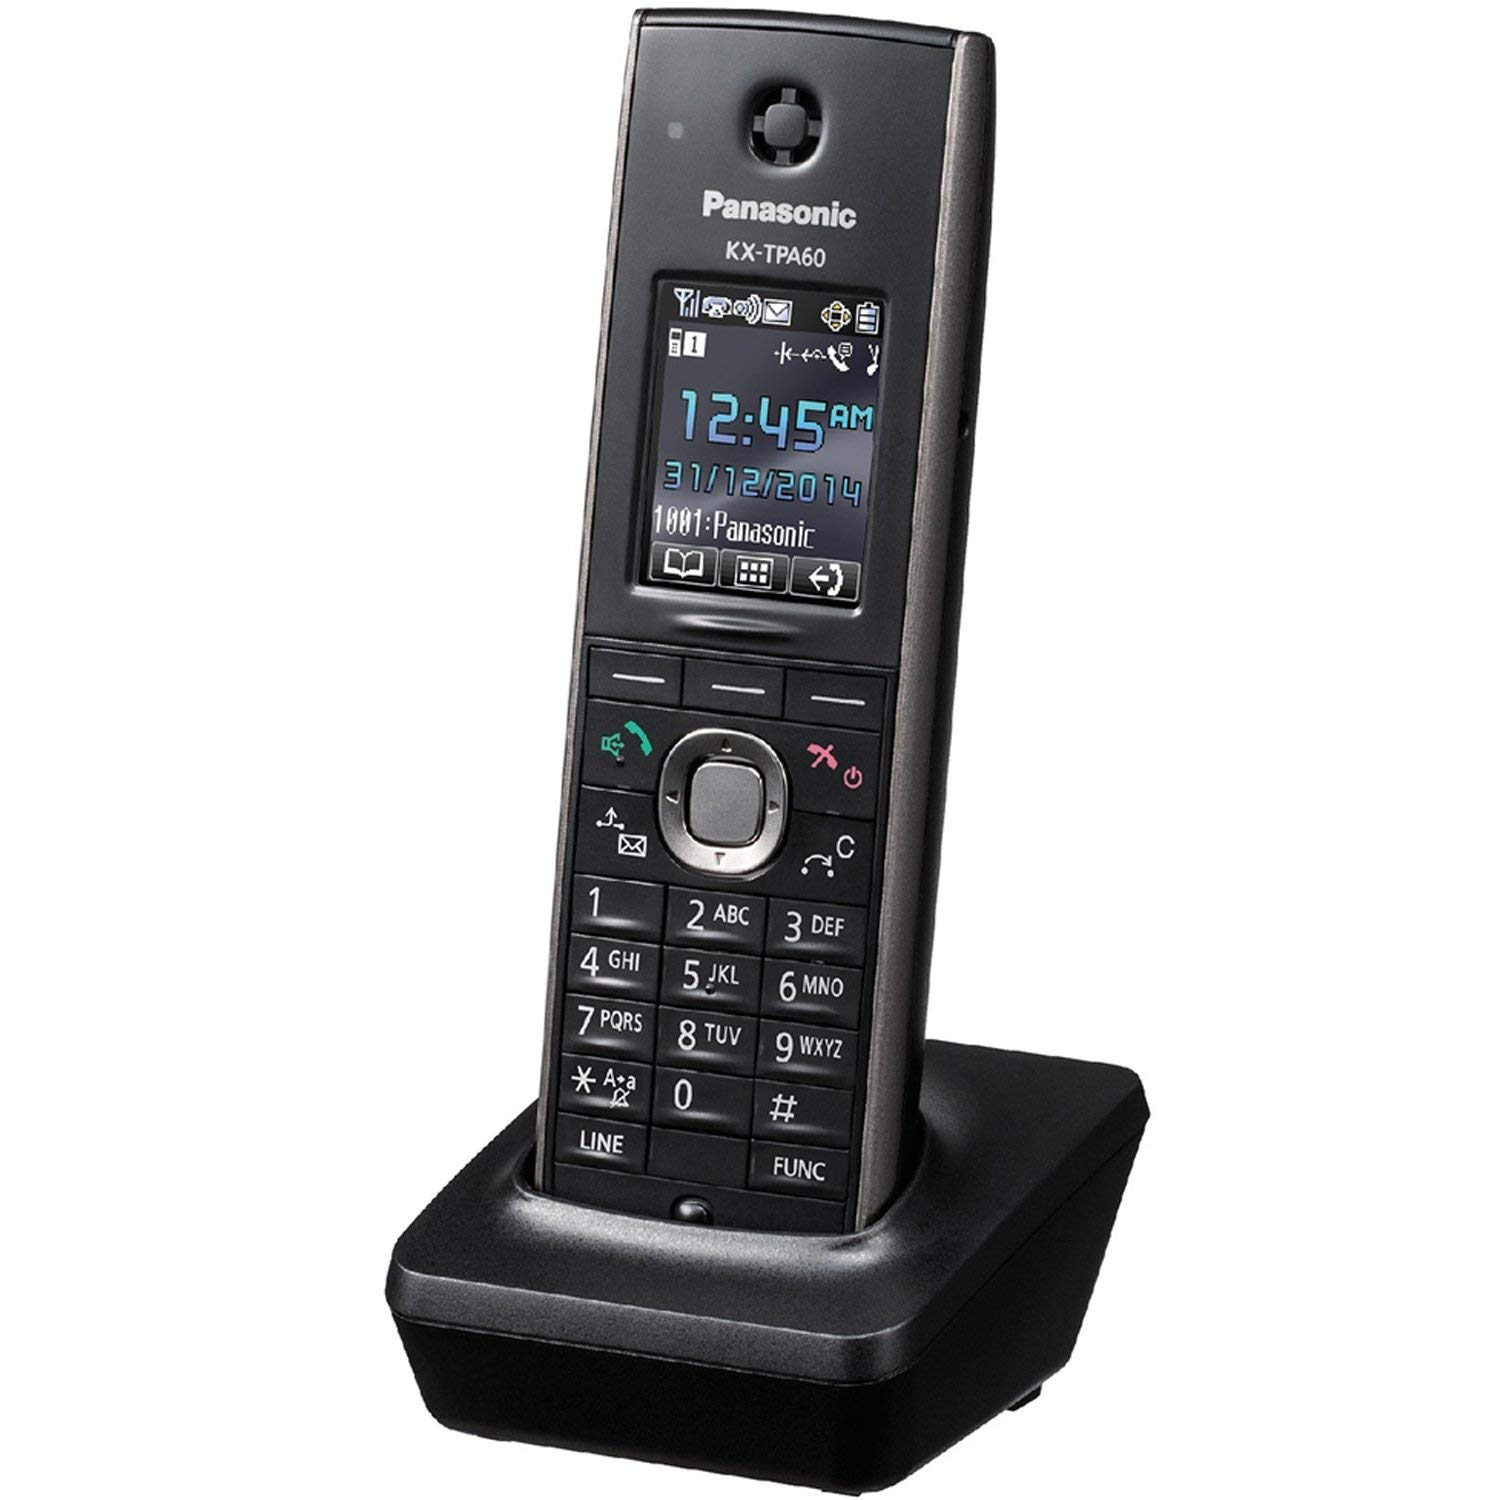 Panasonic KX-TGP600 SIP DECT Base Unit with KX-TPA60 Cordless Handset Business System Pre-programmed by IDT TELECOM by Panasonic (Image #4)